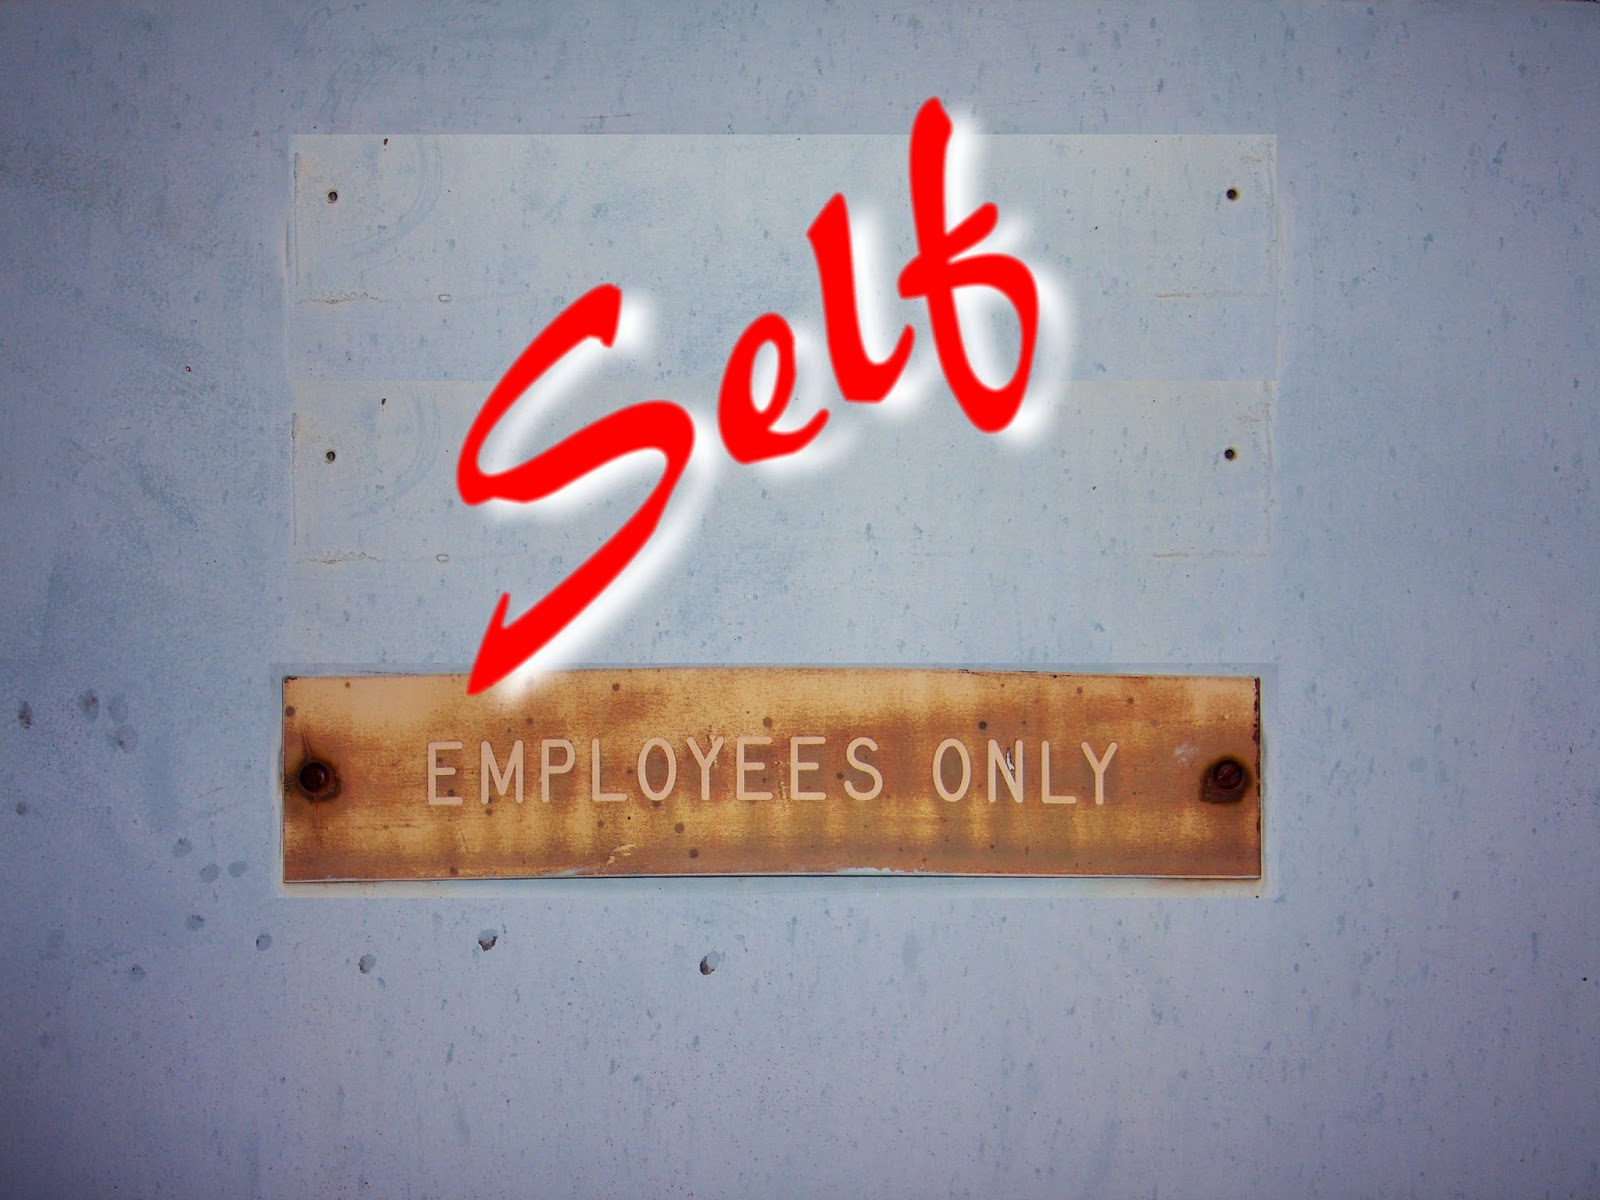 Autoempleo, self-employ